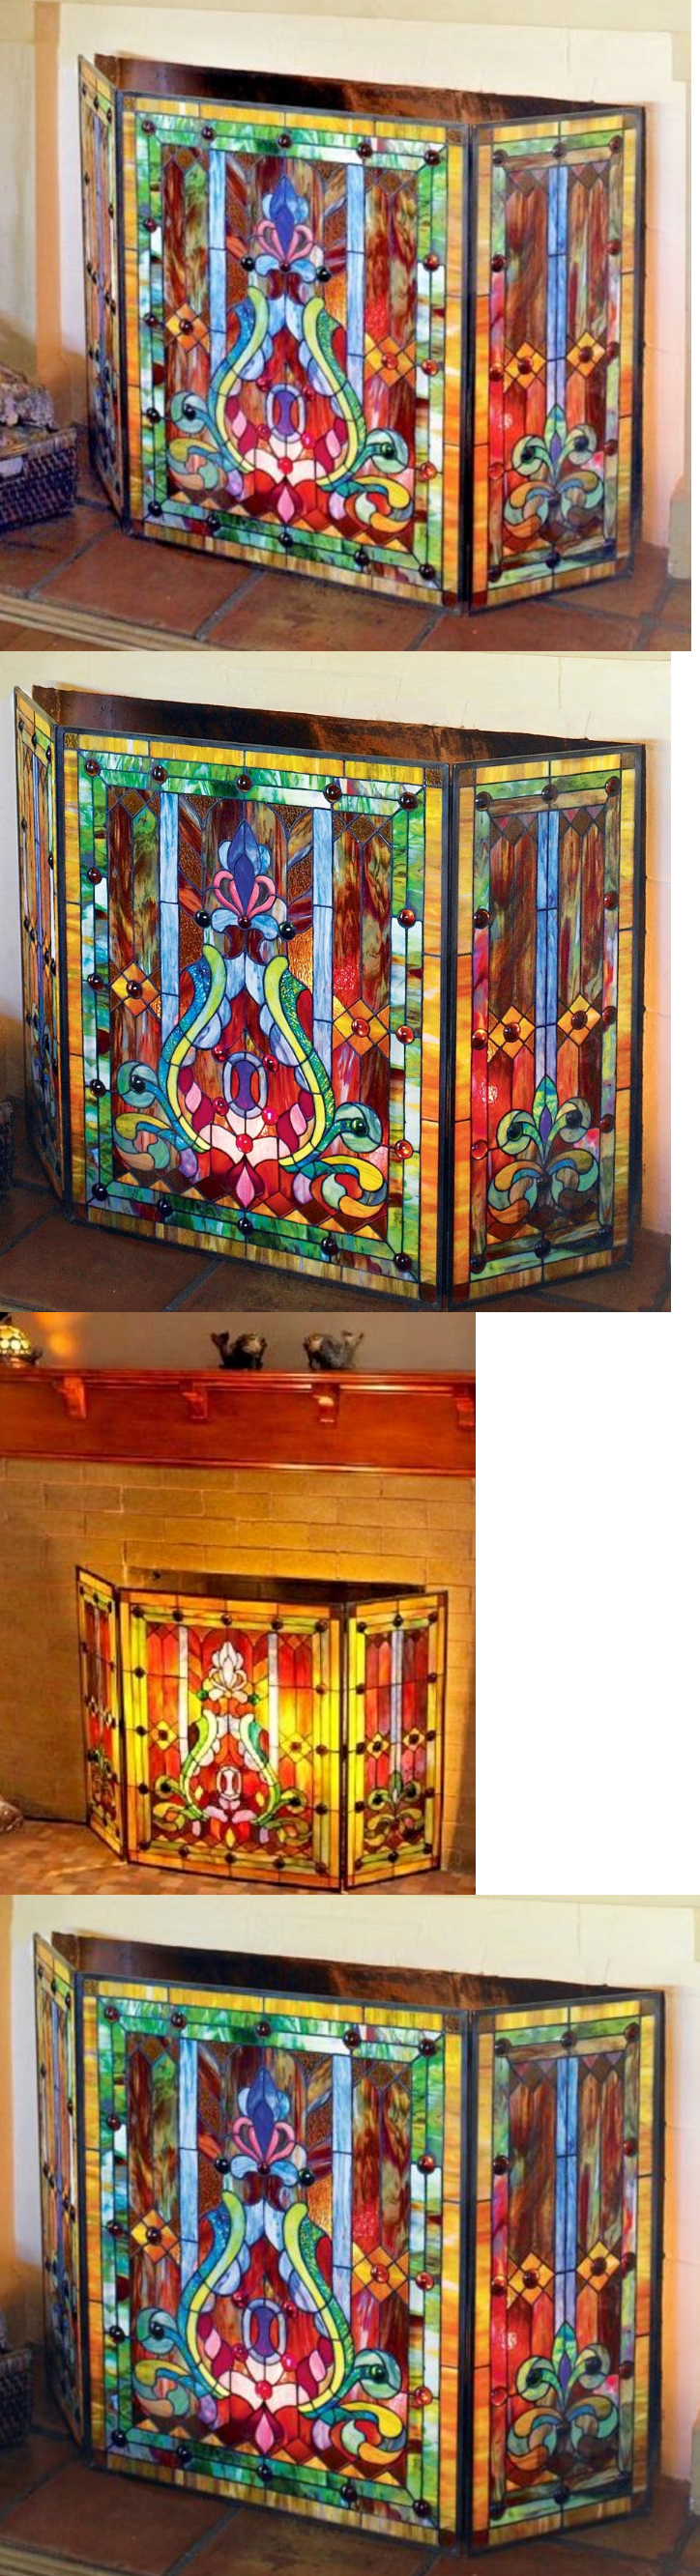 fireplace screens and doors 38221 tiffany style stained glass